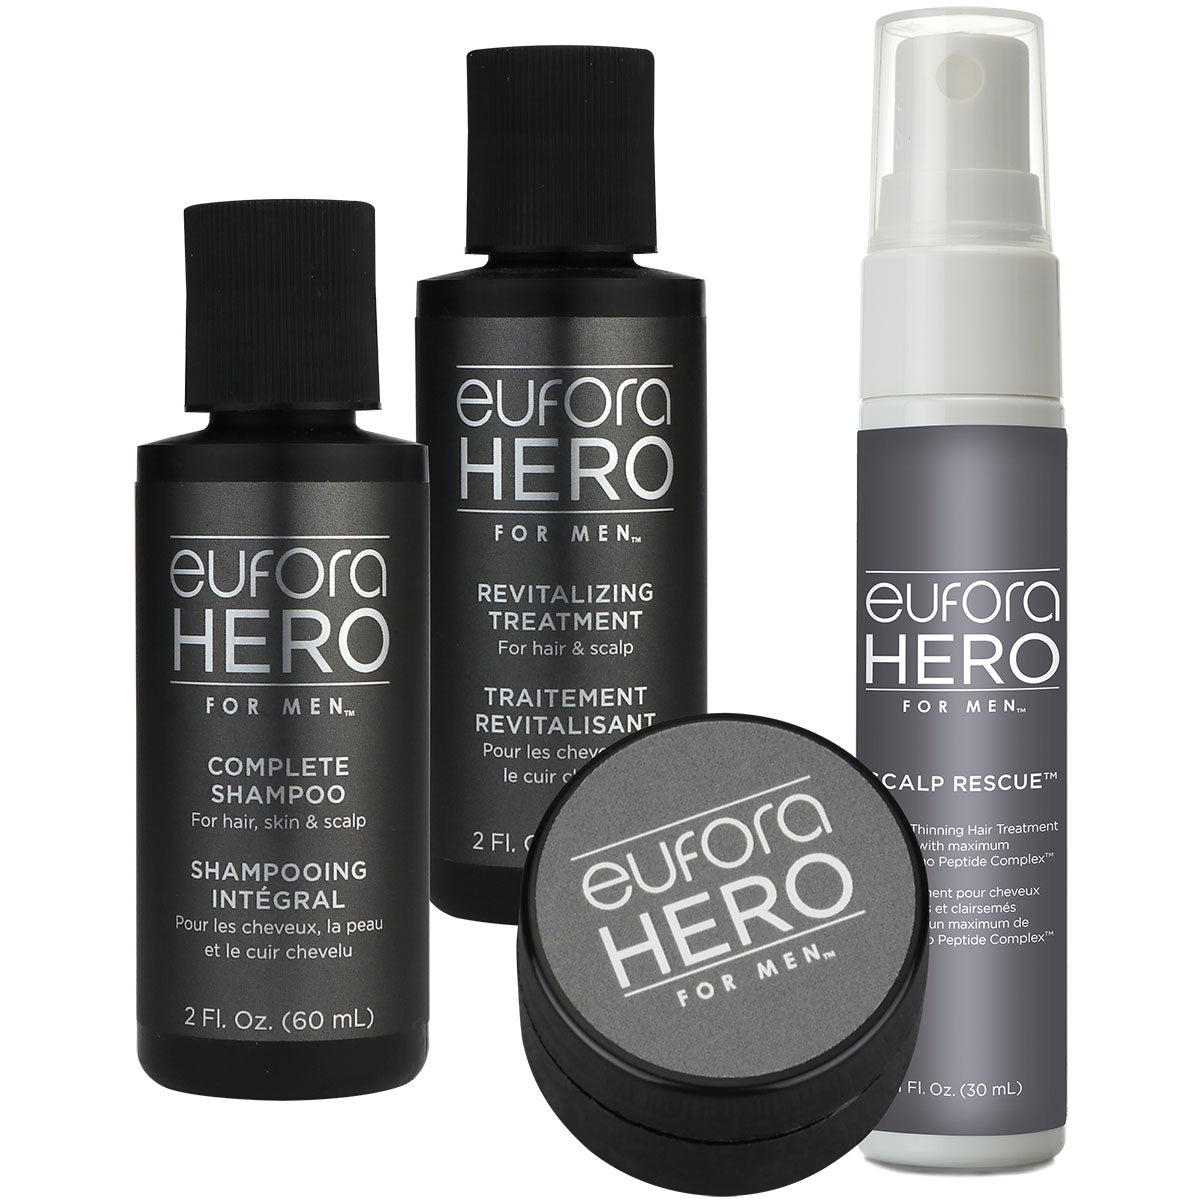 Eufora Hero For Men Starter Kit